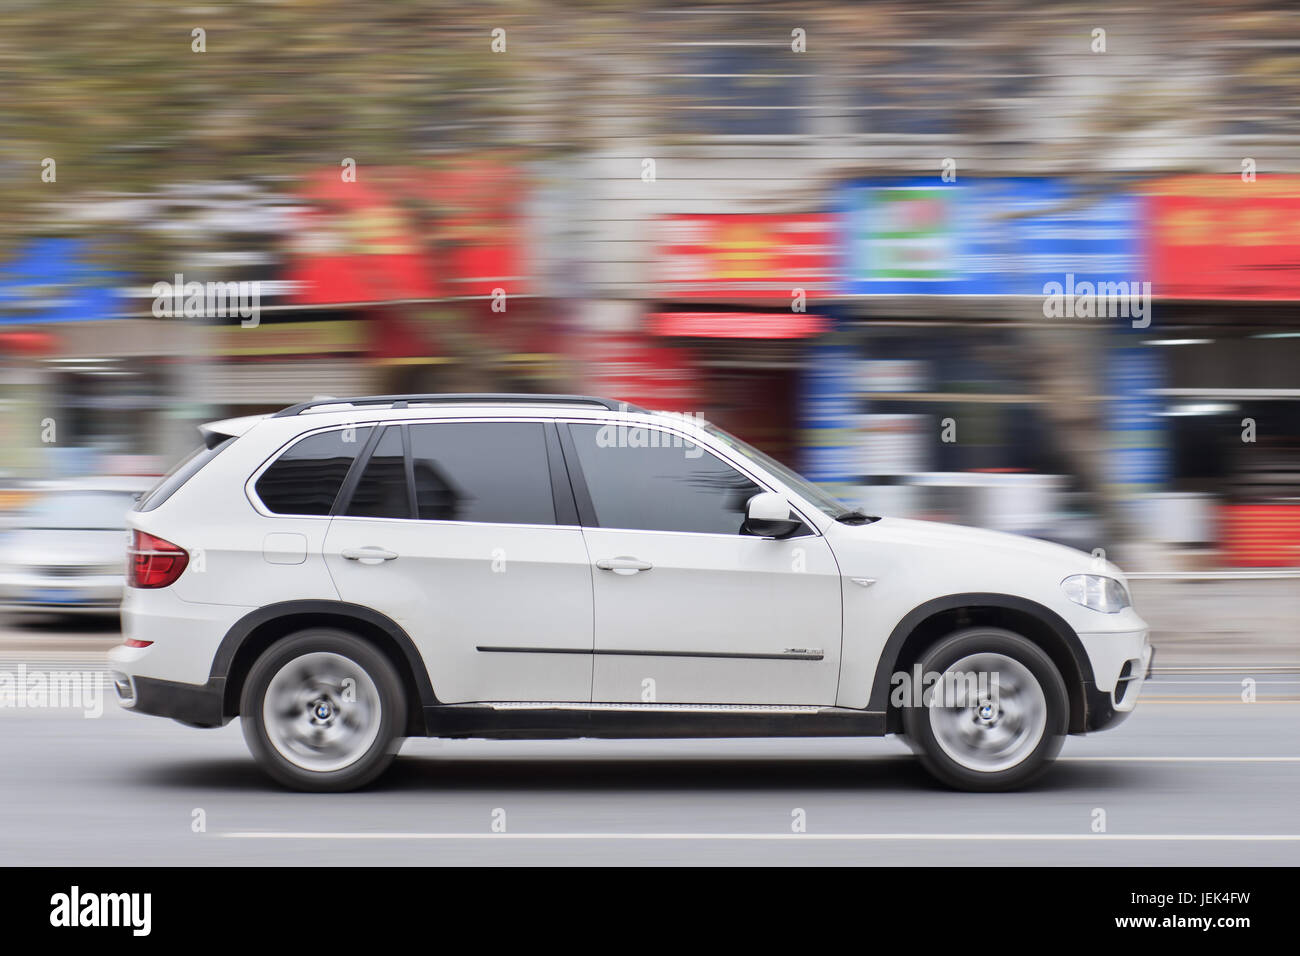 YIWU-CHINA-JANUARY 20, 2016. BMW X5 3.5i on the road. BMW sales will be hit in 2016 by cut-throat competition and - Stock Image